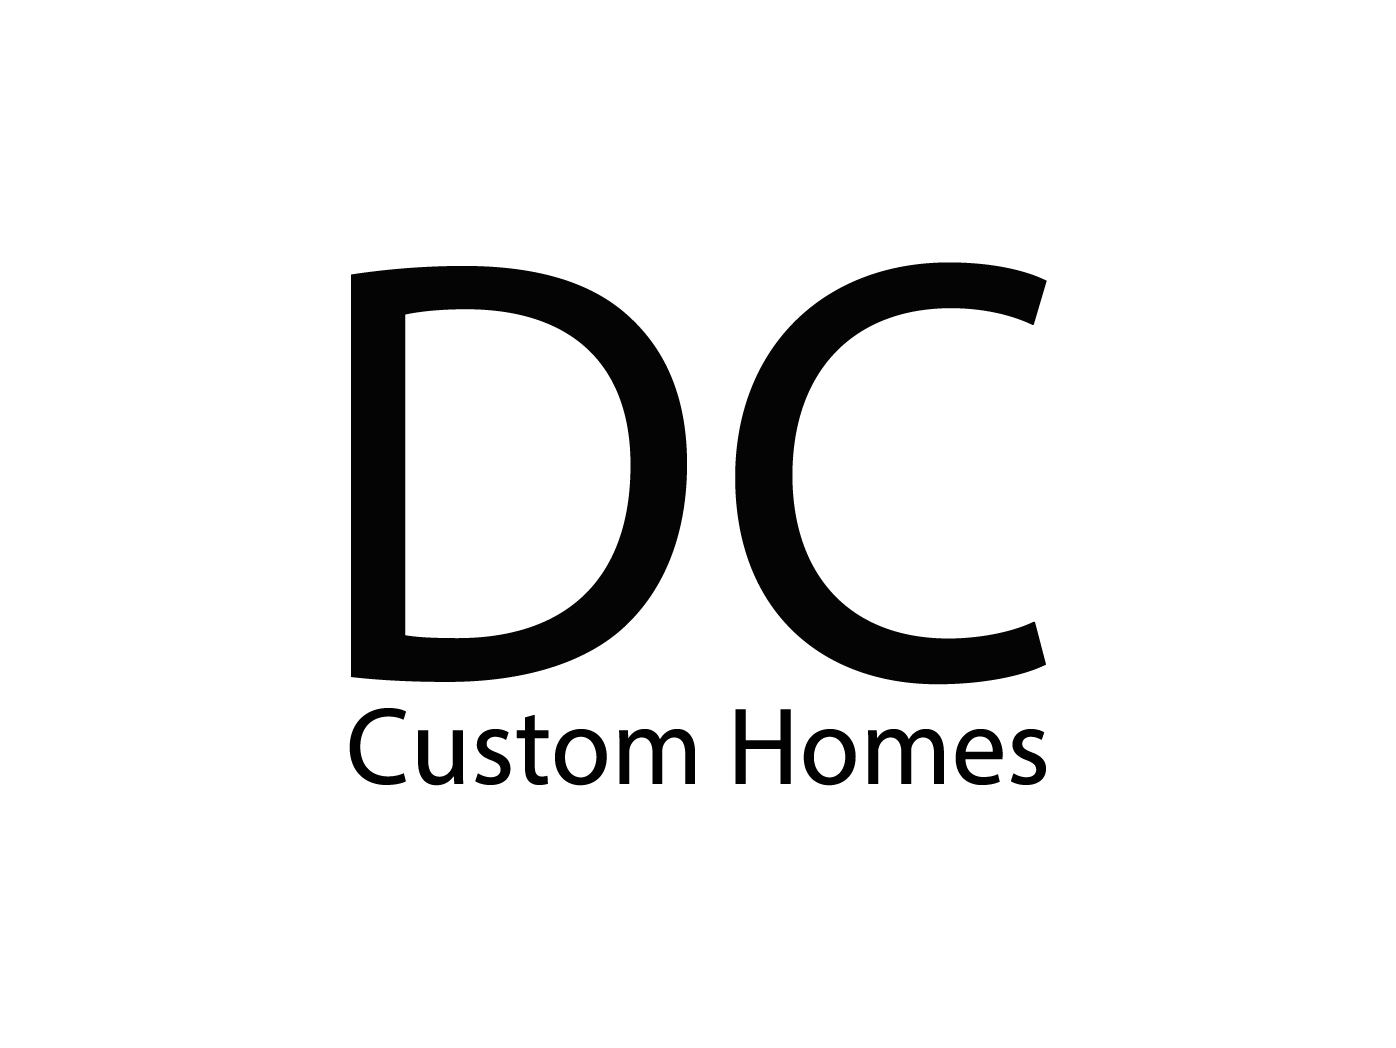 Logo Design by Anderson Lipa - Entry No. 251 in the Logo Design Contest Creative Logo Design for DC Custom Homes.